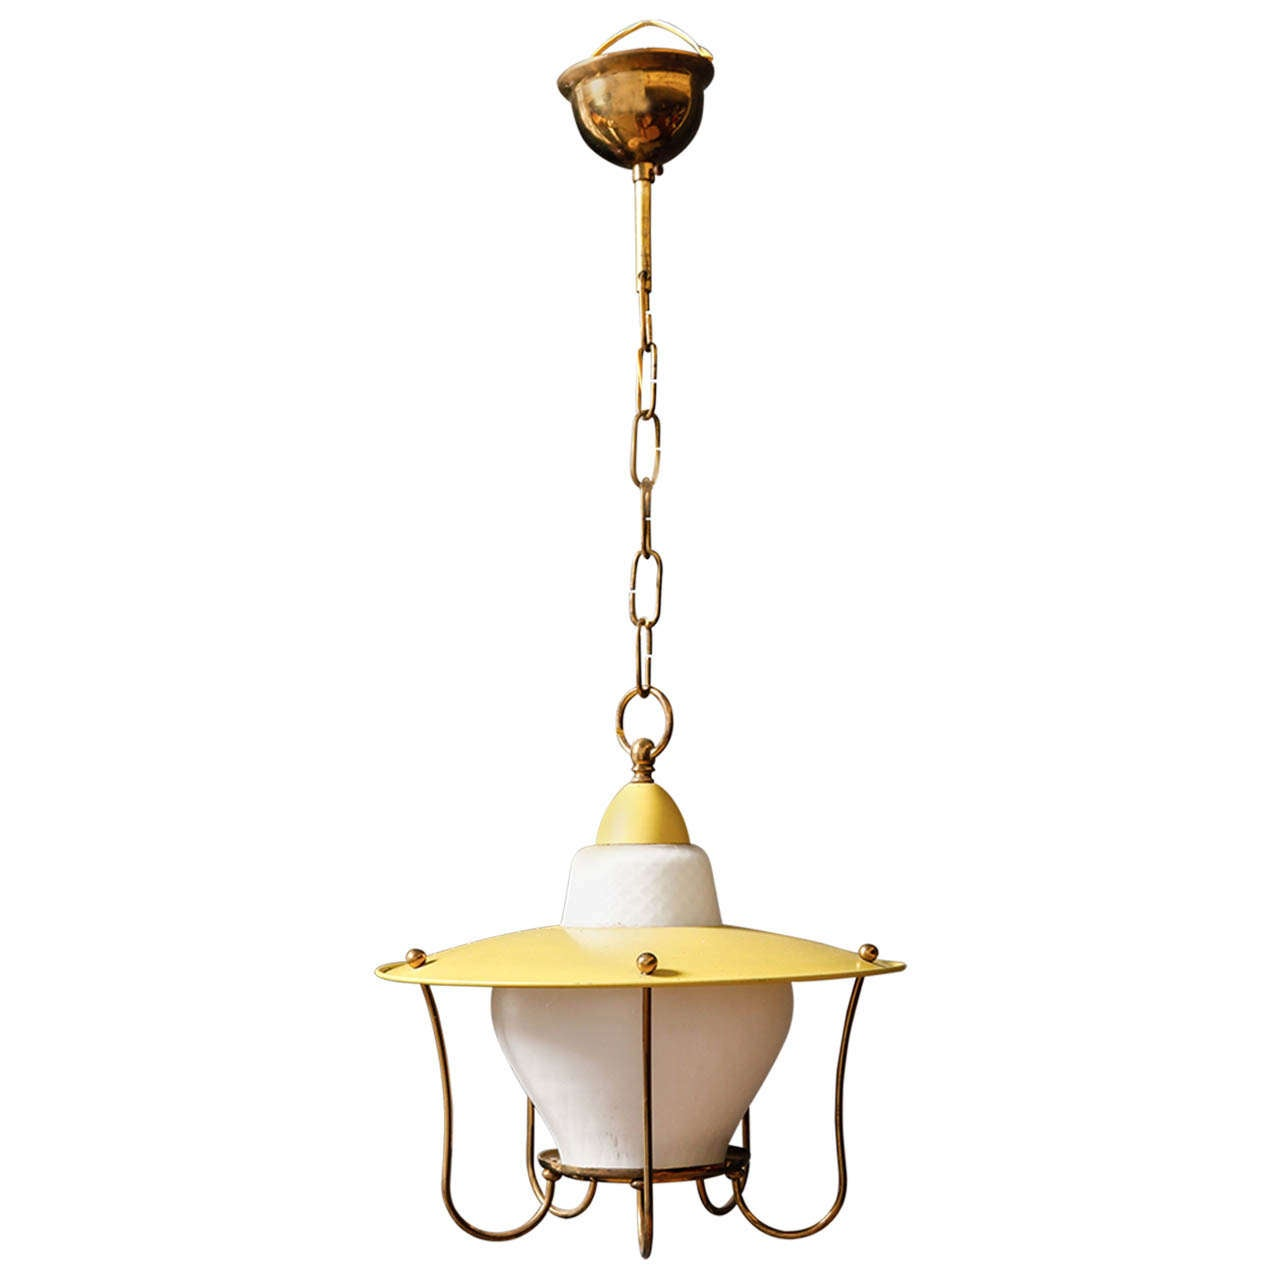 whimsical 1950s brass pendant light at 1stdibs